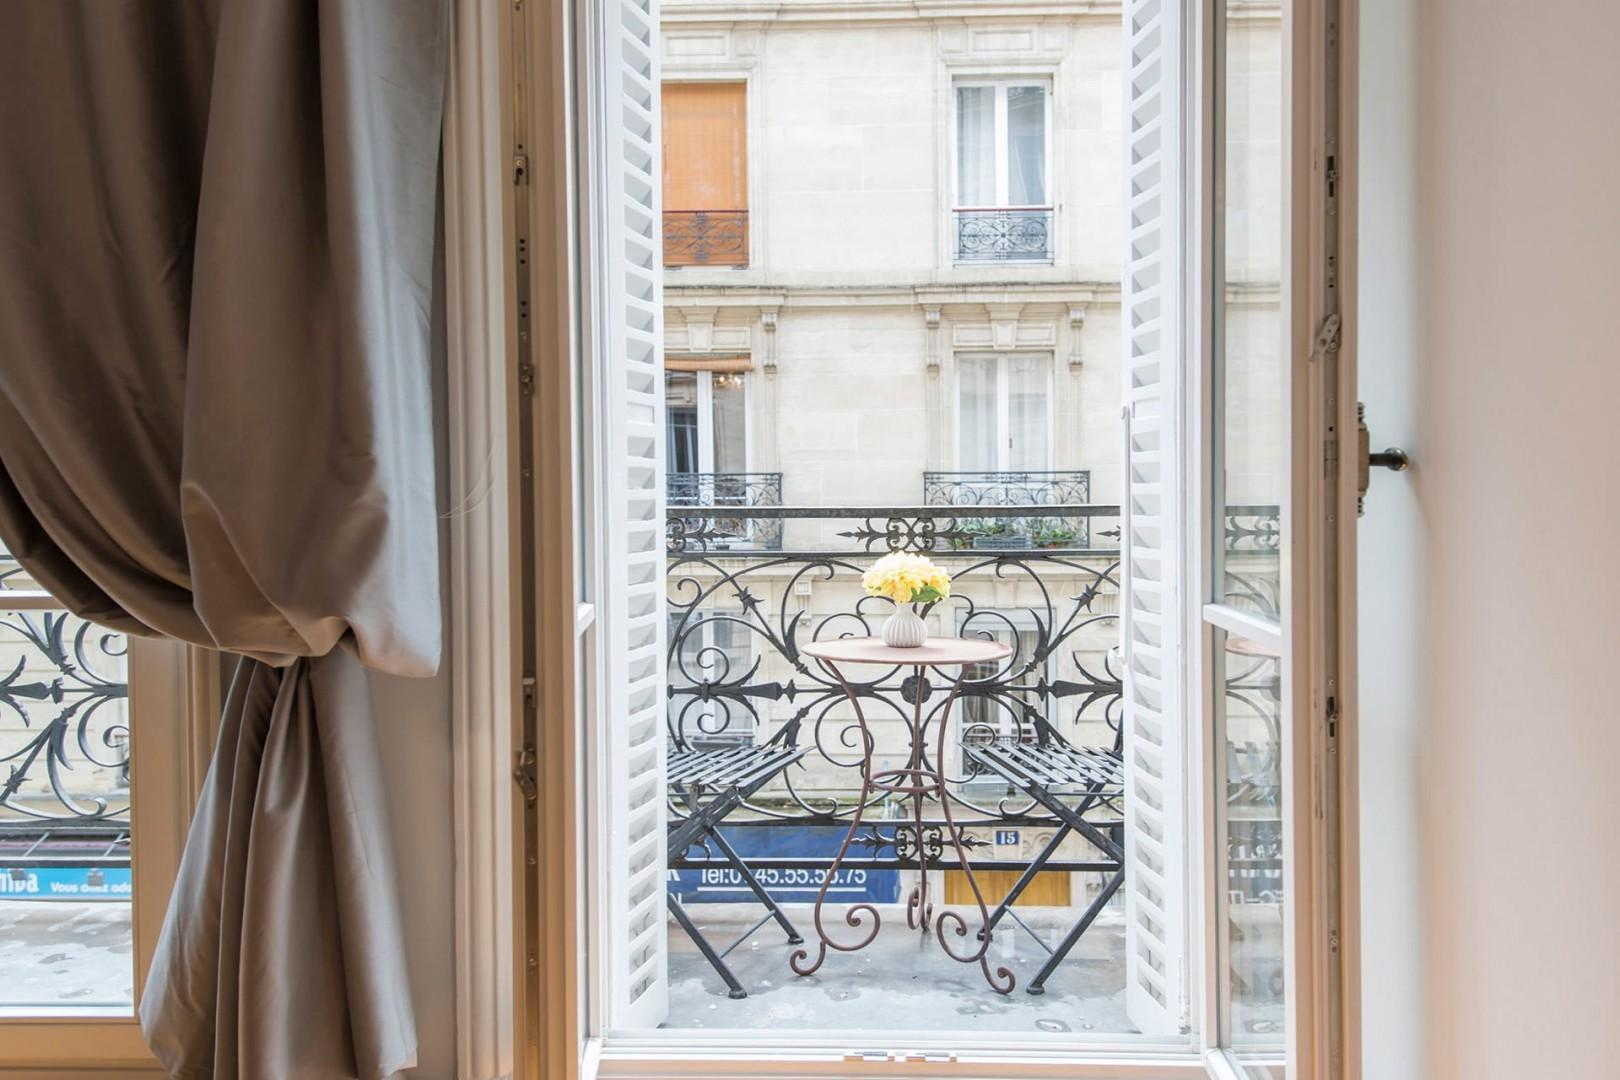 Double French doors lead out to the apartment's balcony.